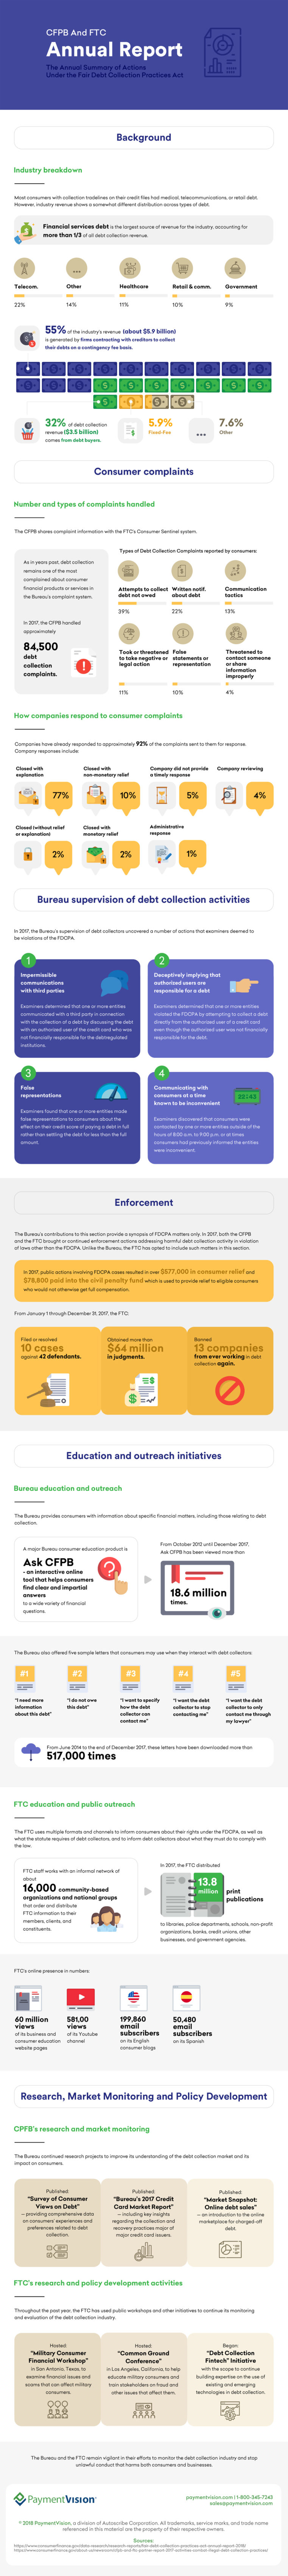 CFPB and FTC Annual Report Infographic